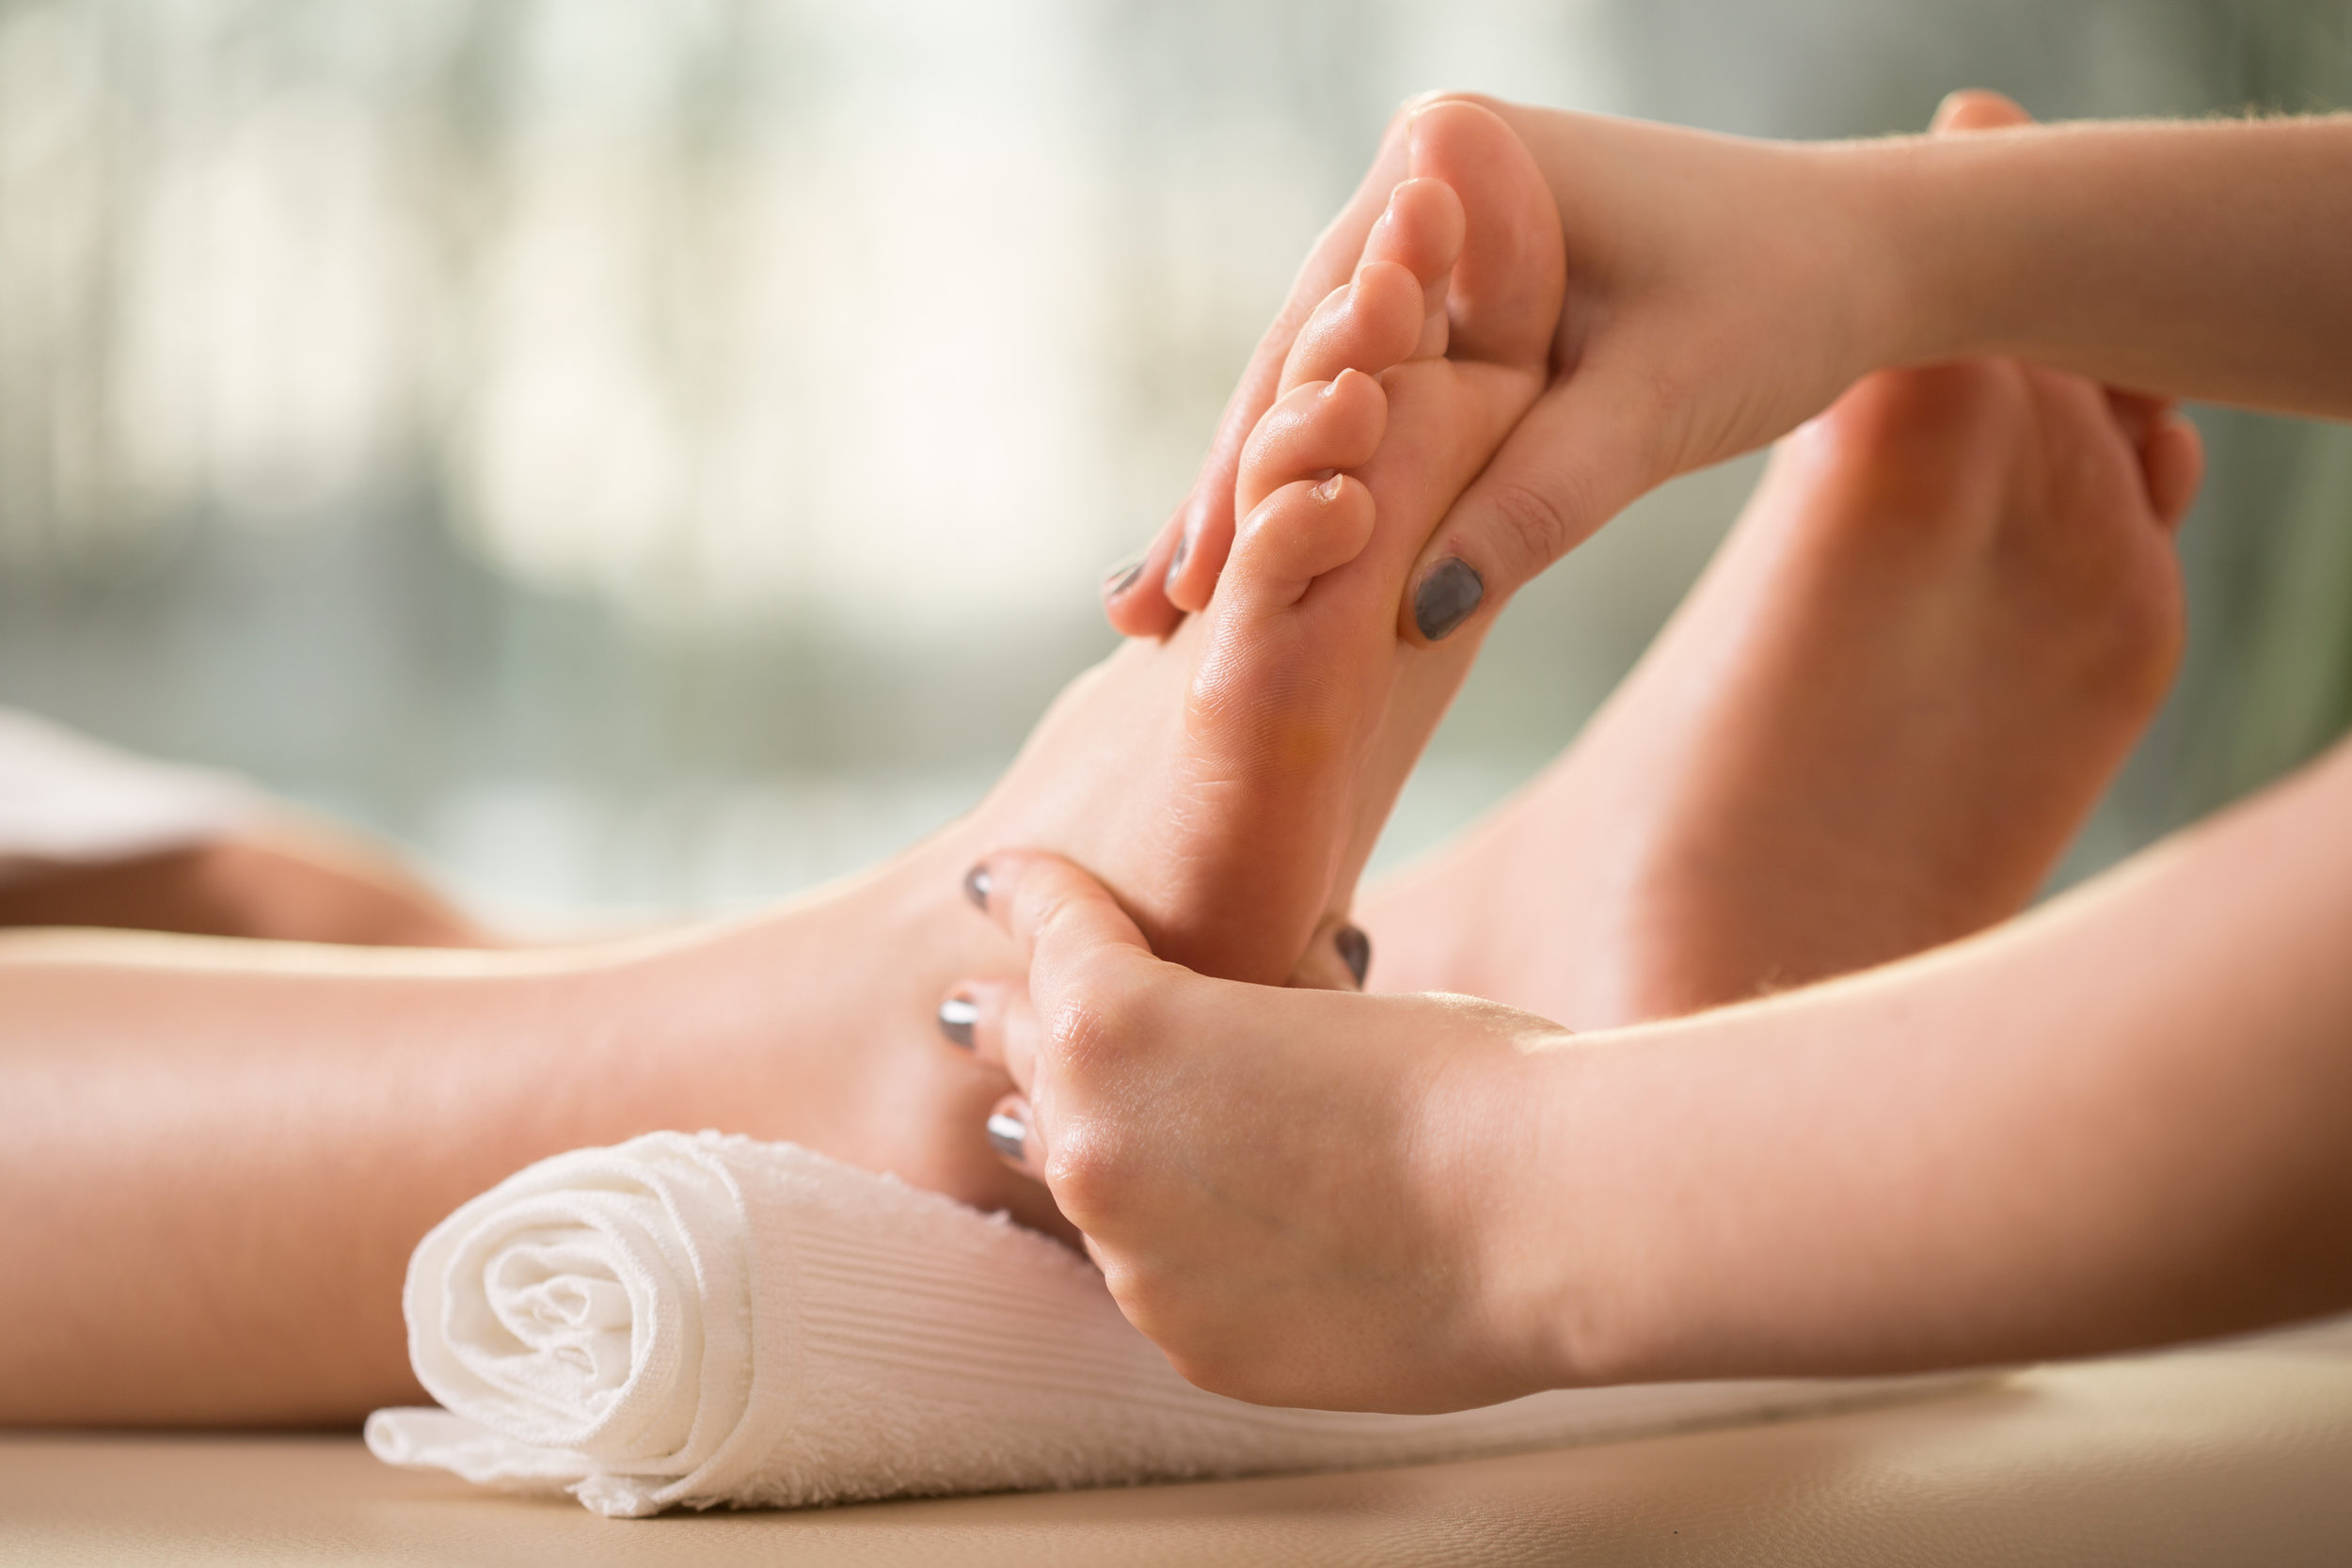 Reflexology - This is a treatment performed on the feet to help unblock energy channels within the body and promote balance and calm within the body. Using a combination of gentle manipulation and pressure points to benefit the client physically and emotionally. This treatment can help ease muscular pain from around the body and stimulate the body's endorphins which is a natural pain killer.60 mins =£47.00